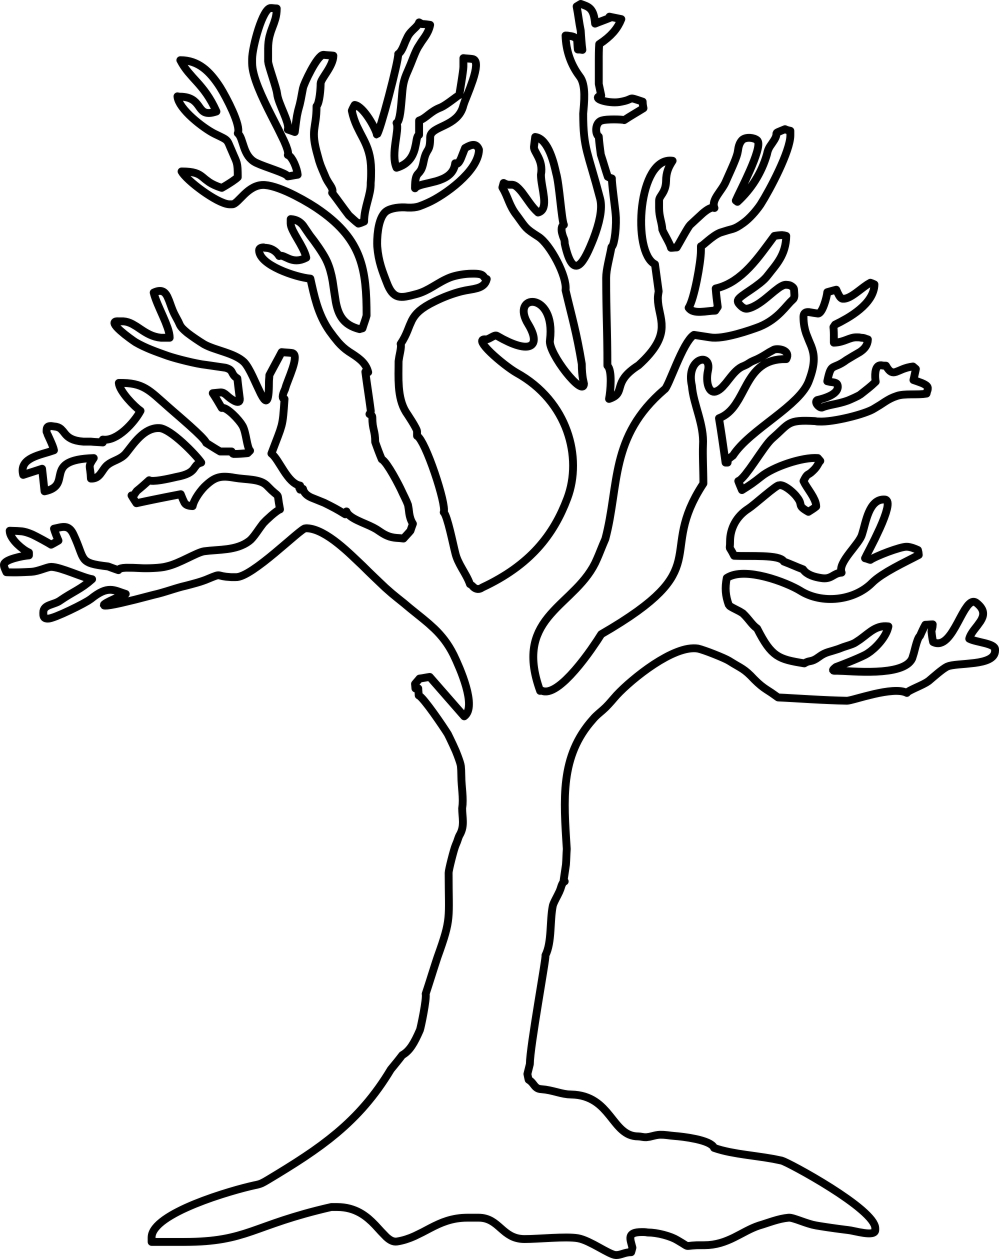 tree clipart coloring best christmas tree outline 7027 clipartioncom tree clipart coloring